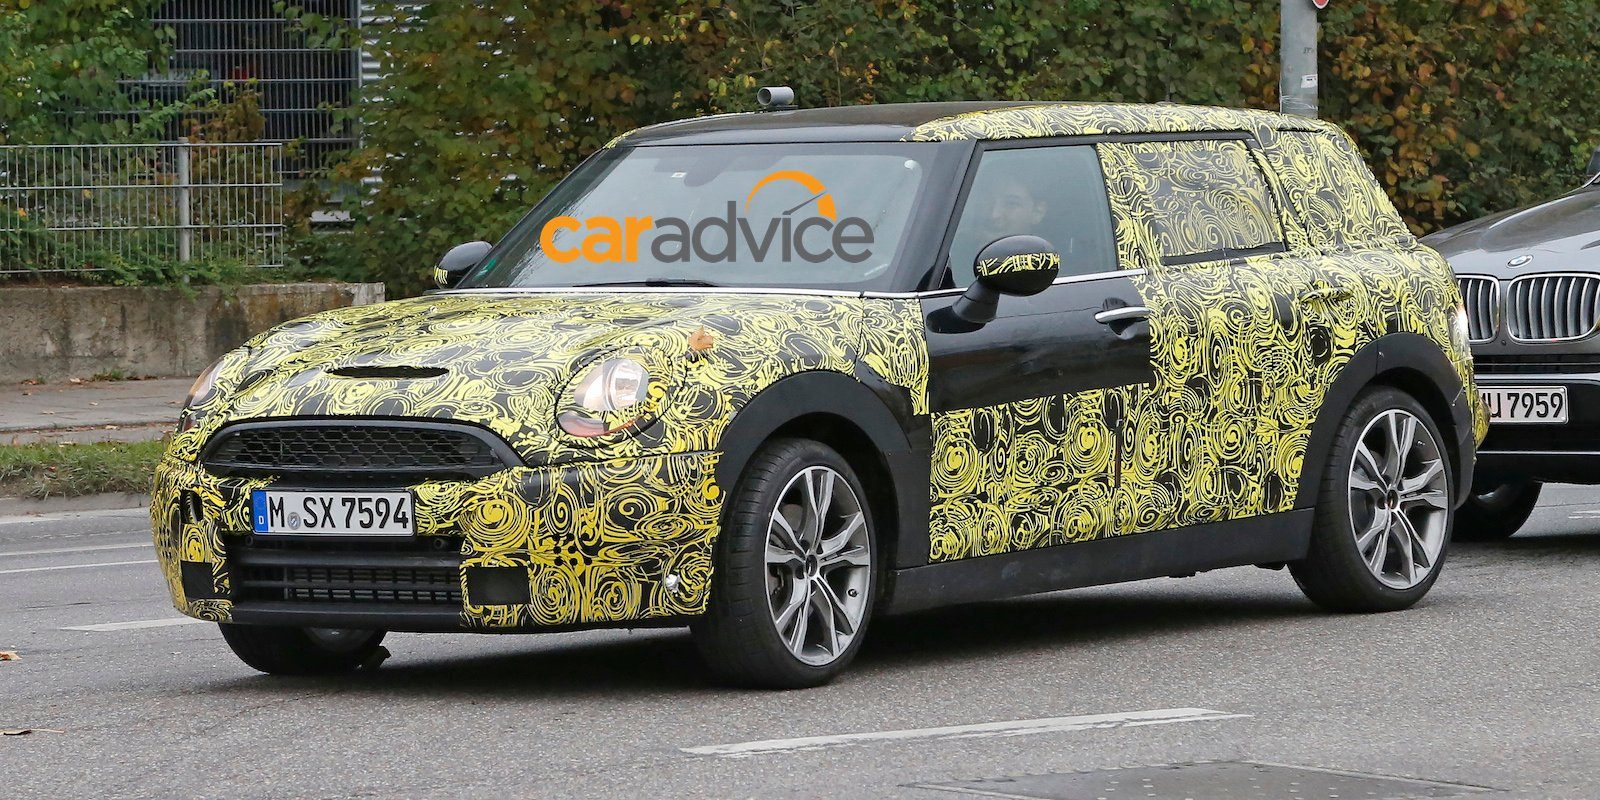 2016 mini clubman interior revealed in latest spy shots photos 1 of 8. Black Bedroom Furniture Sets. Home Design Ideas